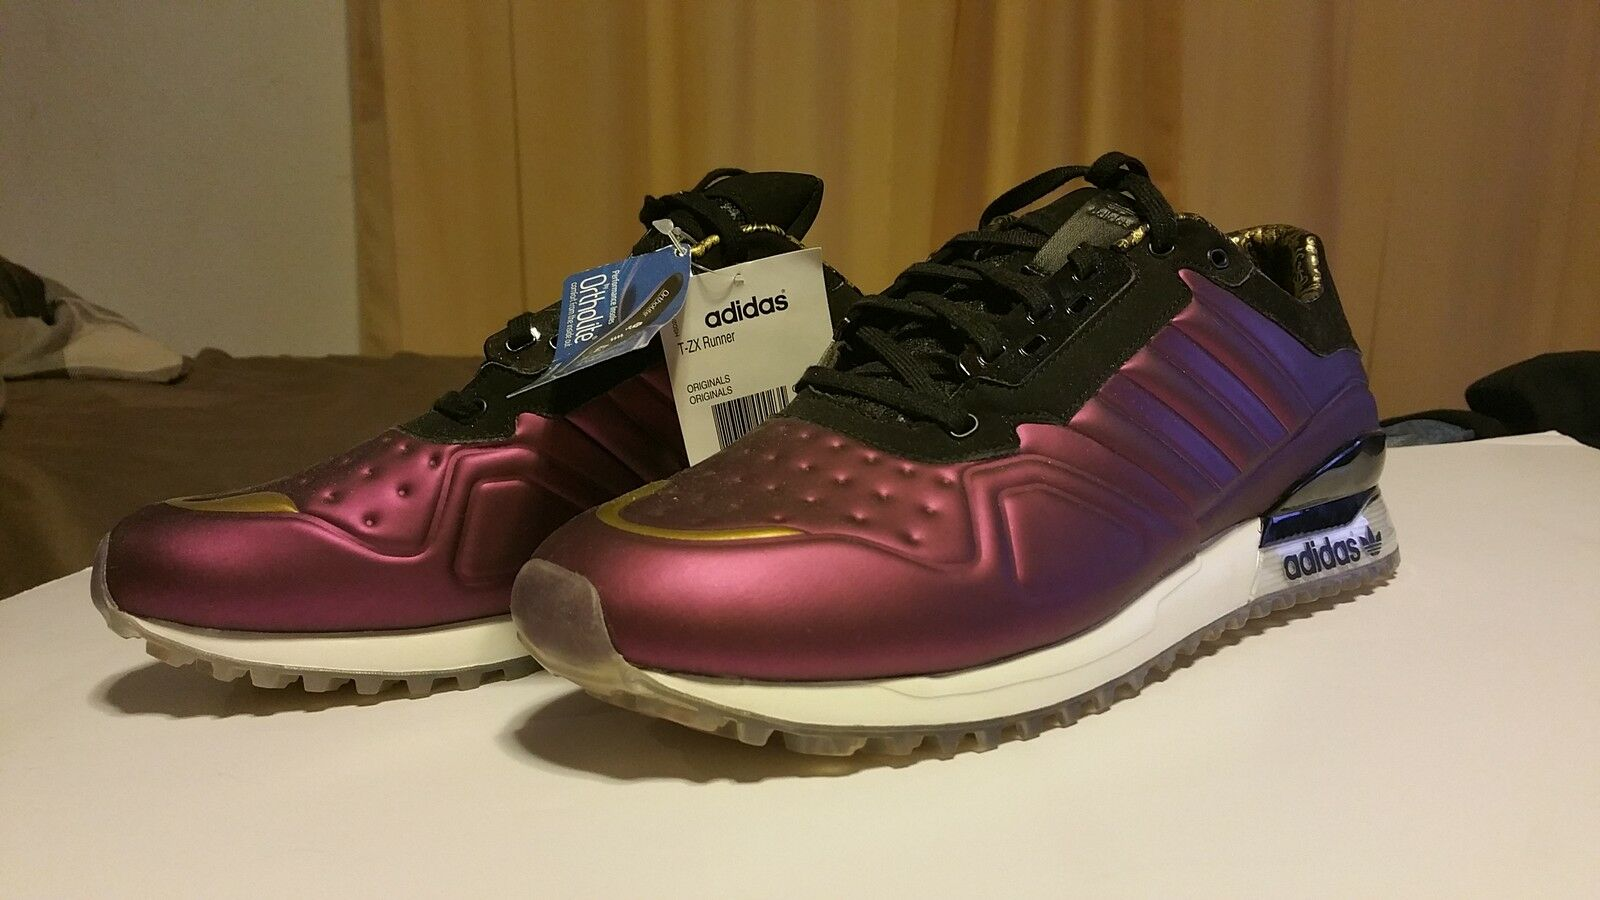 Adidas Runner T-ZX Runner Adidas size 11.5 Brand New with Tags ac1b95